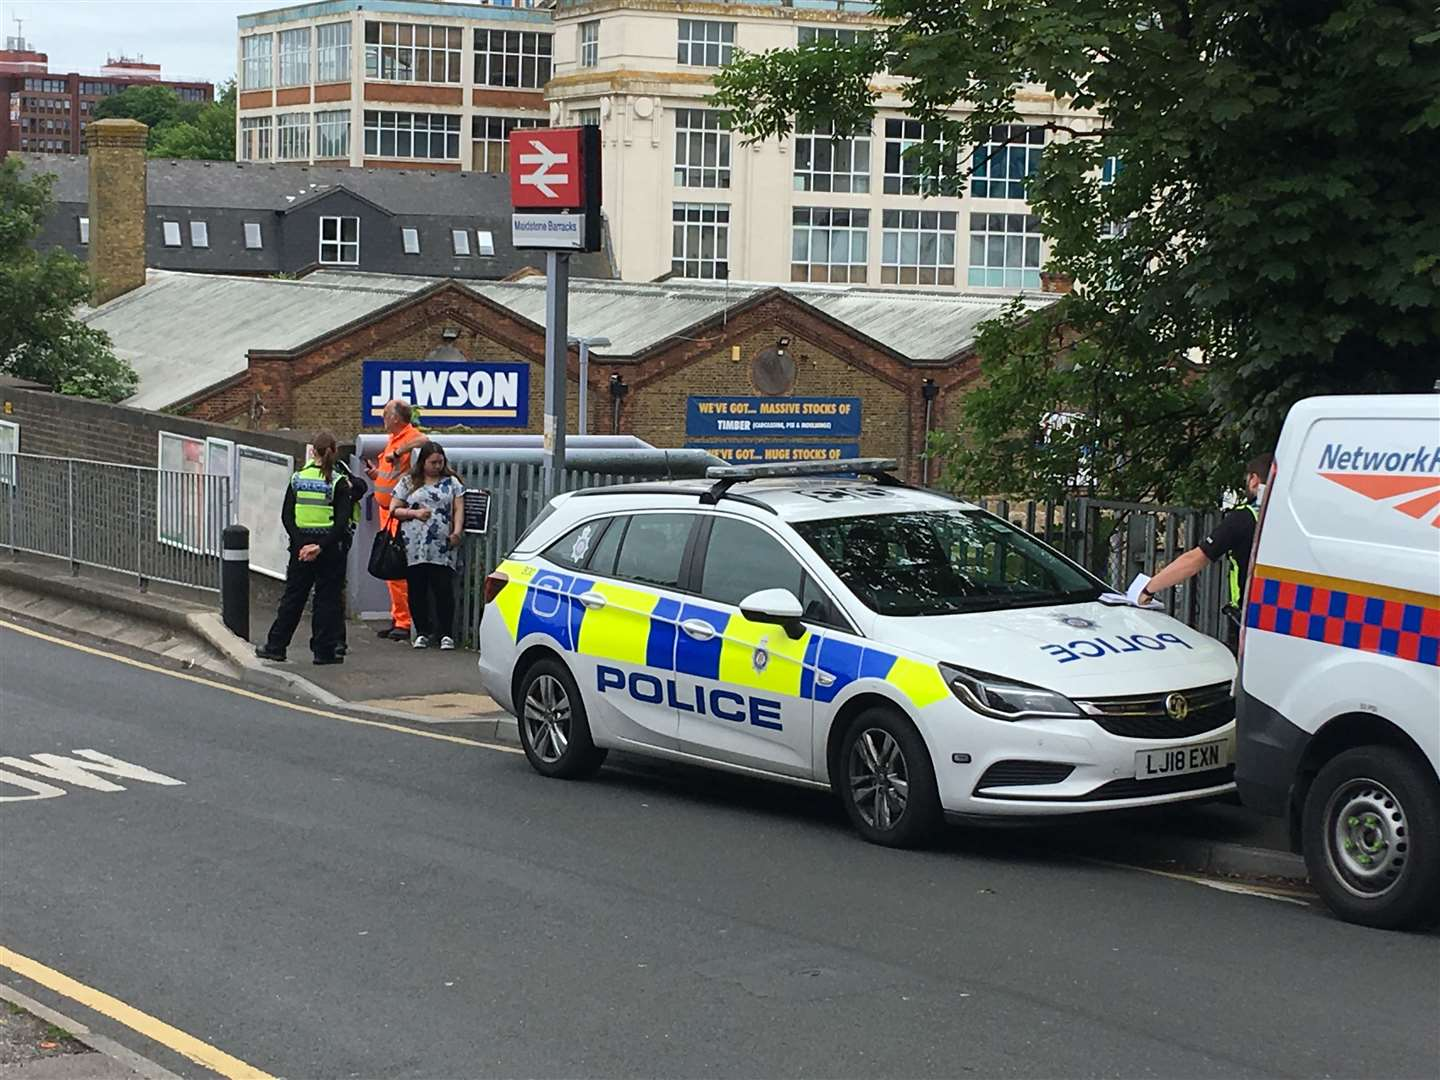 Police and a Network Rail response vehicle are at the station (11524047)